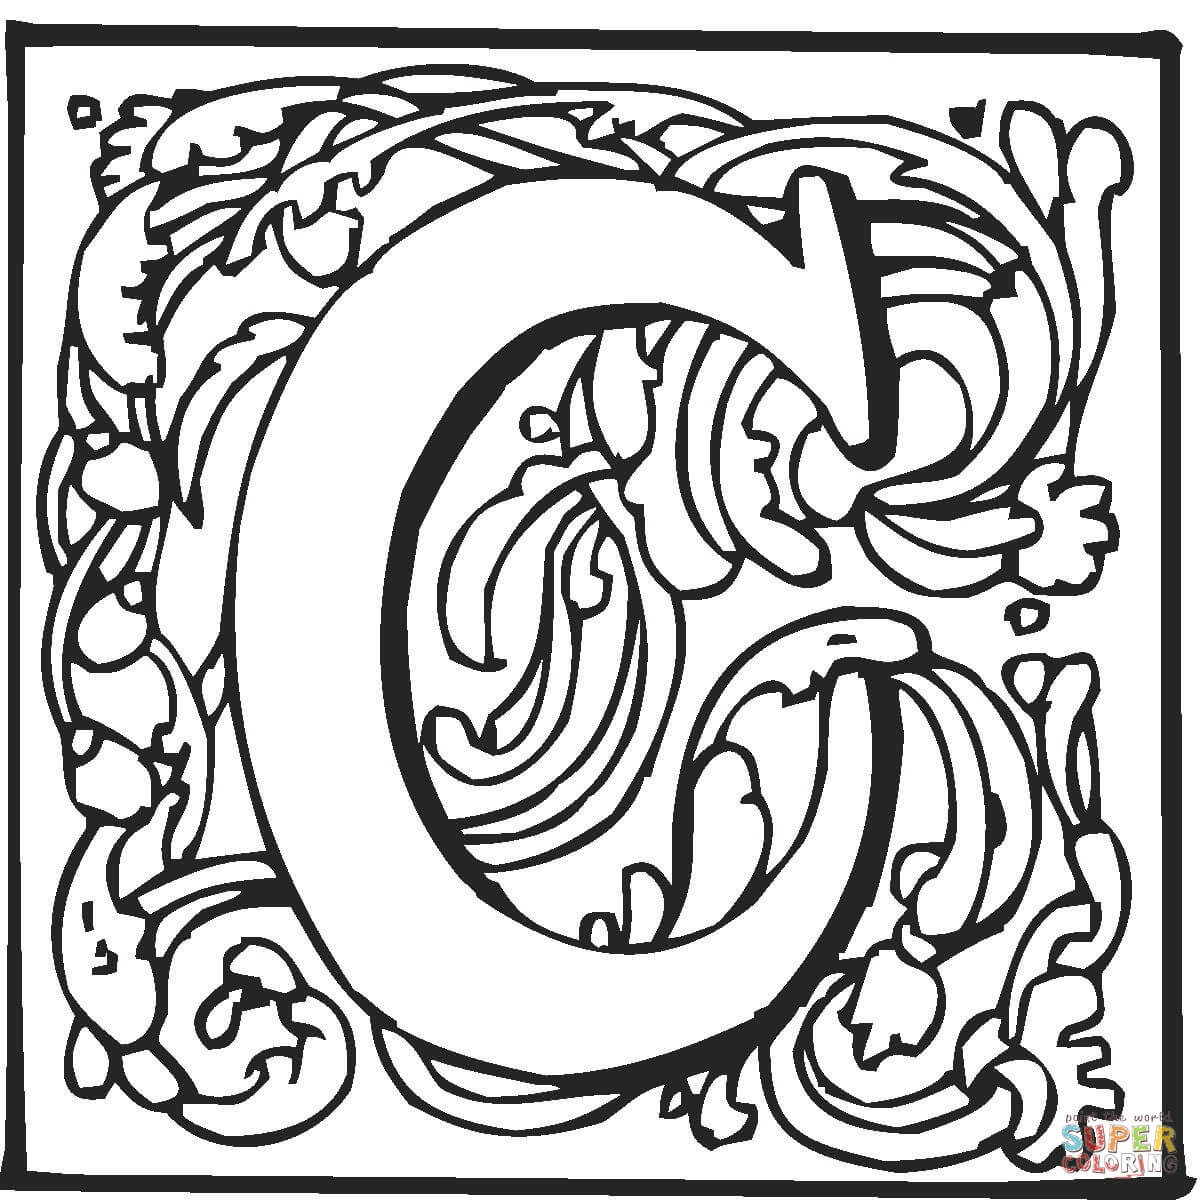 click the letter c coloring page to view printable version or color it